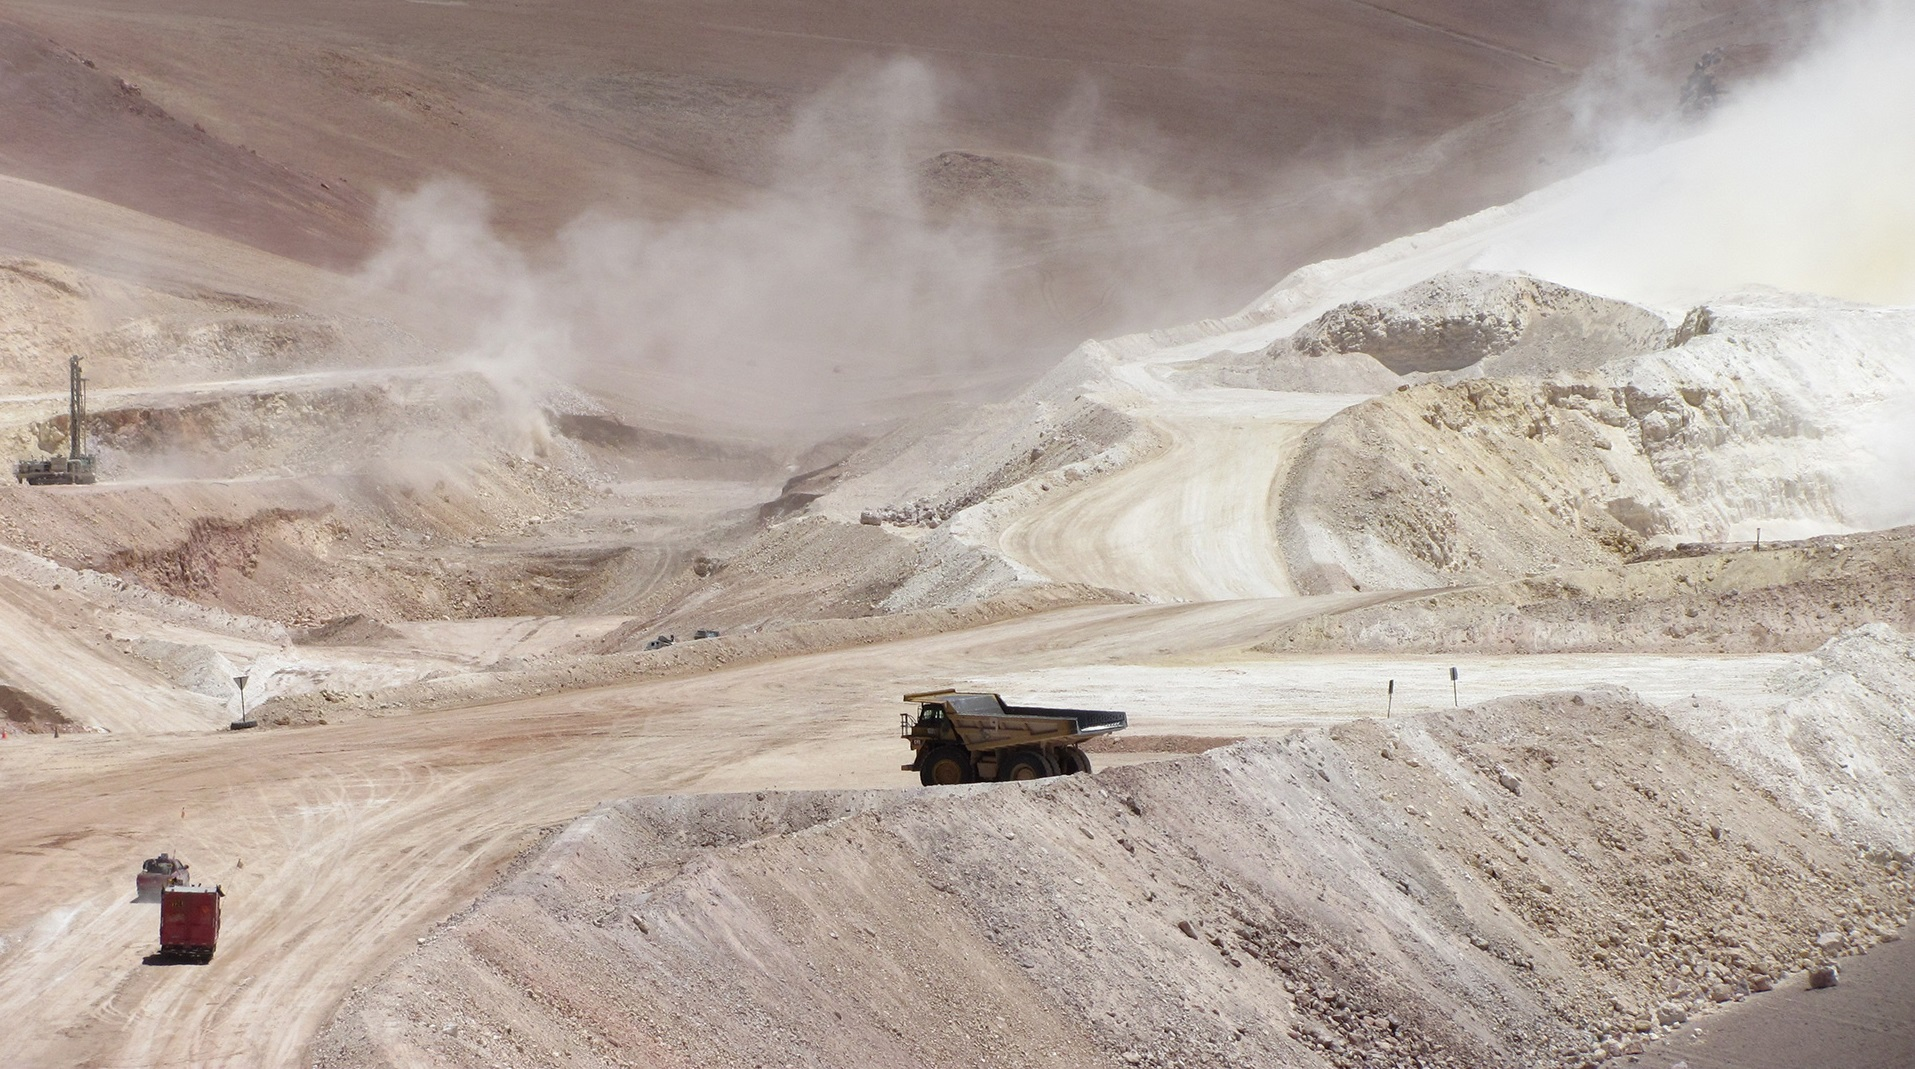 Massive trucks shifting ore at a mine site